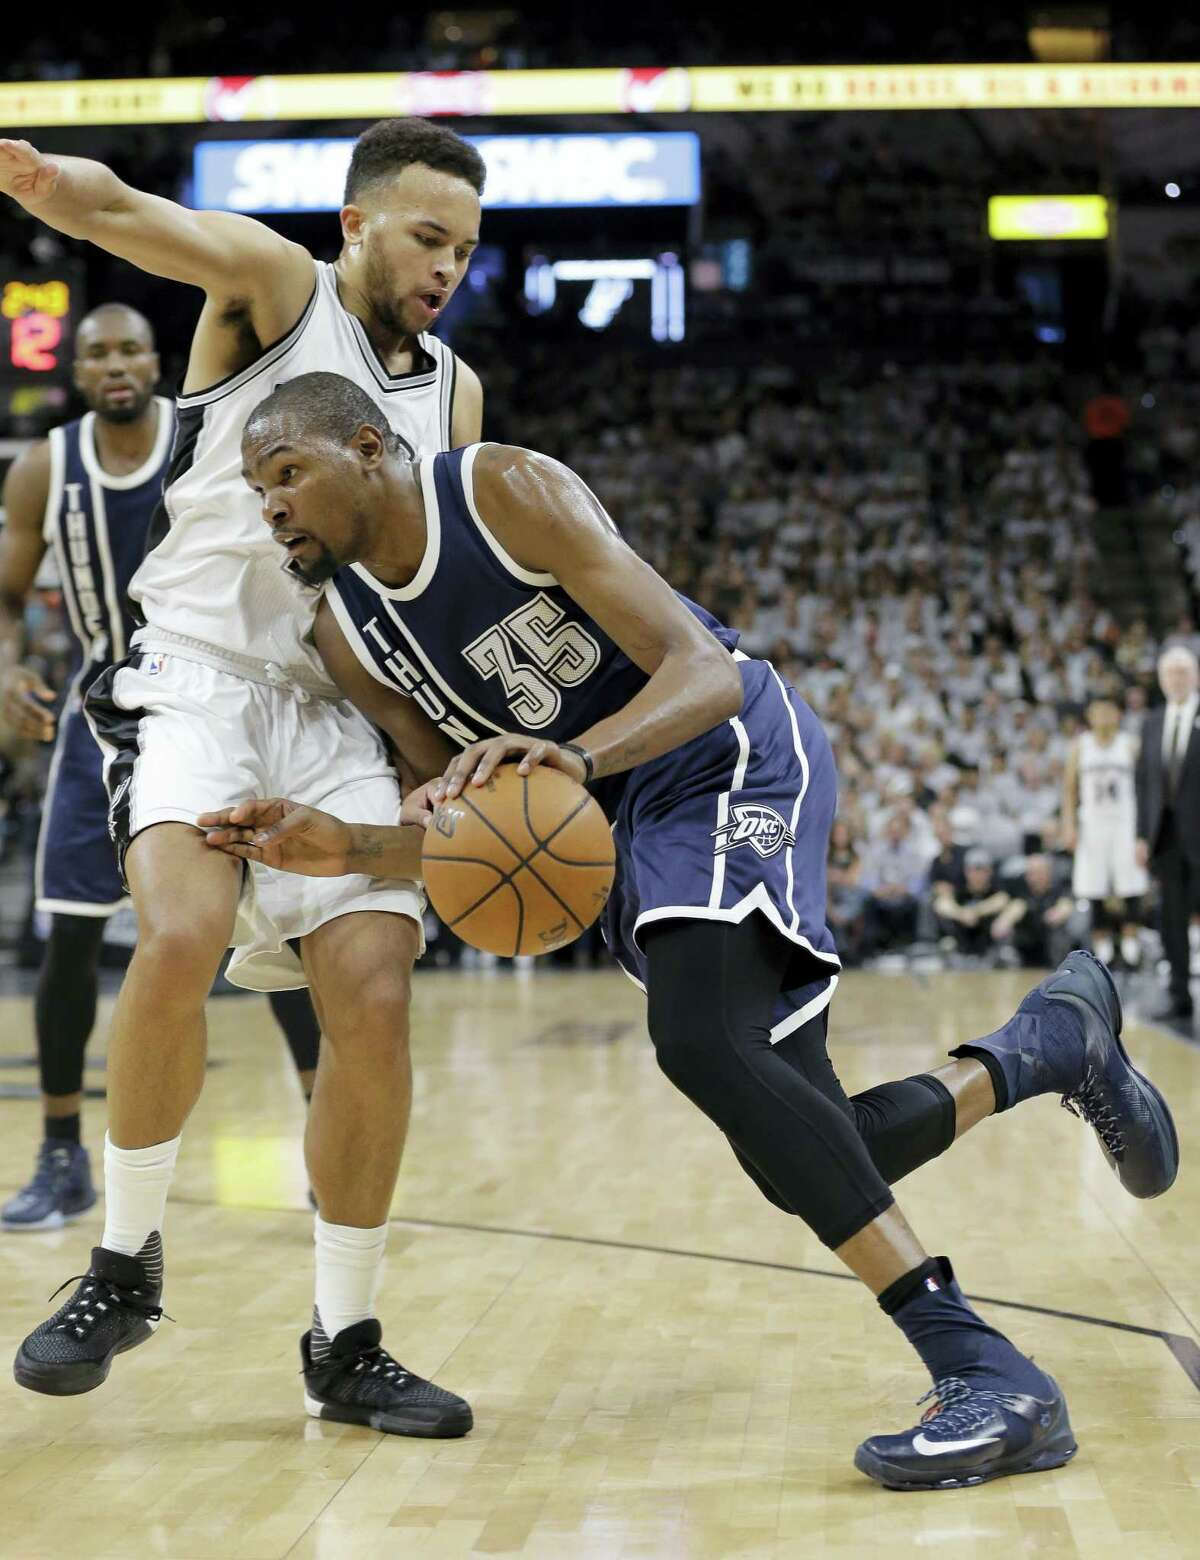 Oklahoma City Thunder forward Kevin Durant (35) drives around San Antonio Spurs forward Kyle Anderson (1) during the first half in Game 1 of a second-round NBA basketball playoff series on April 30, 2016 in San Antonio.